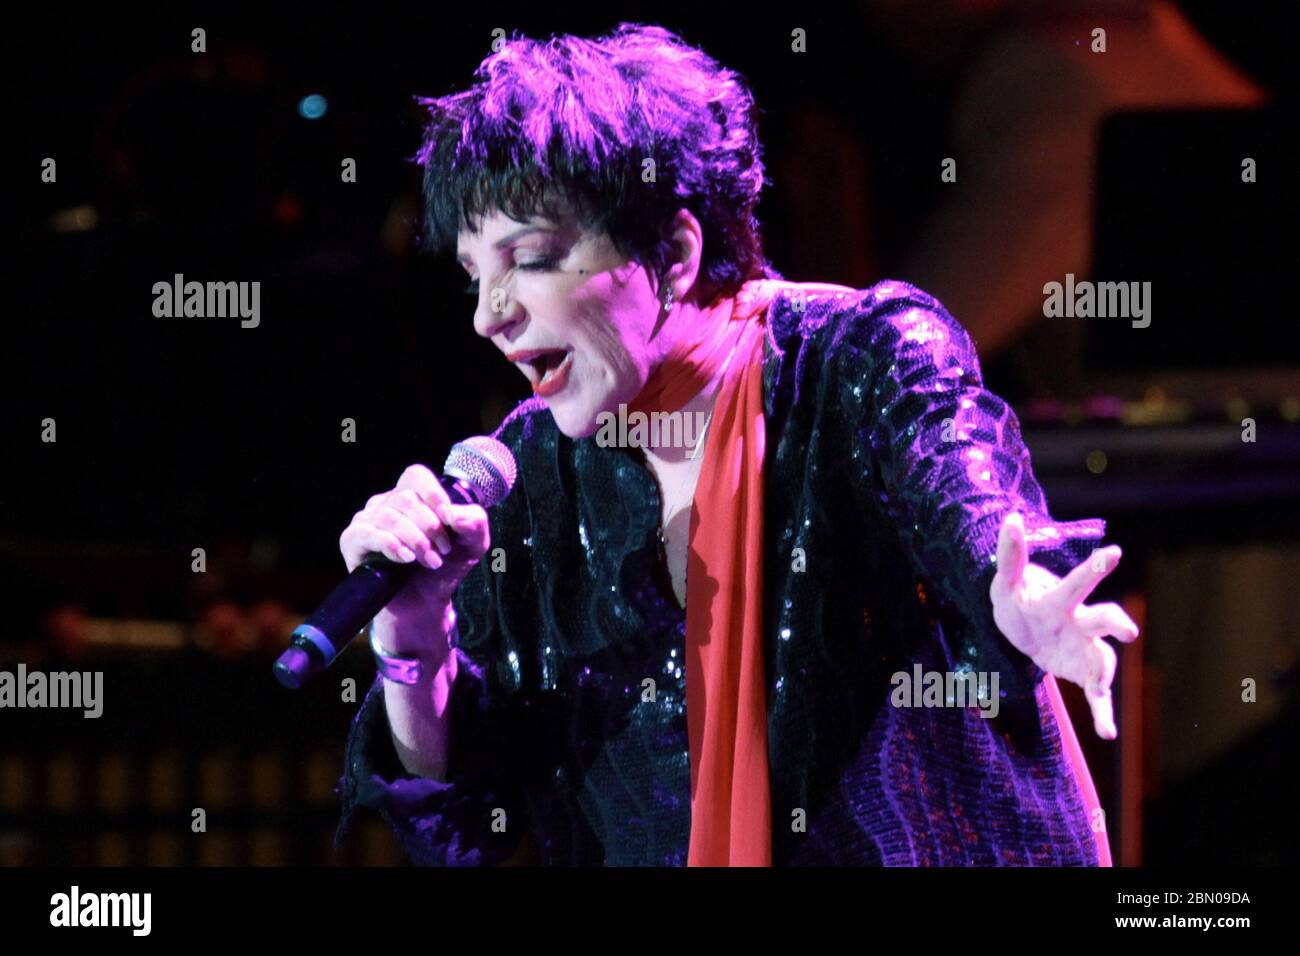 Liza May Minnelli High Resolution Stock Photography and